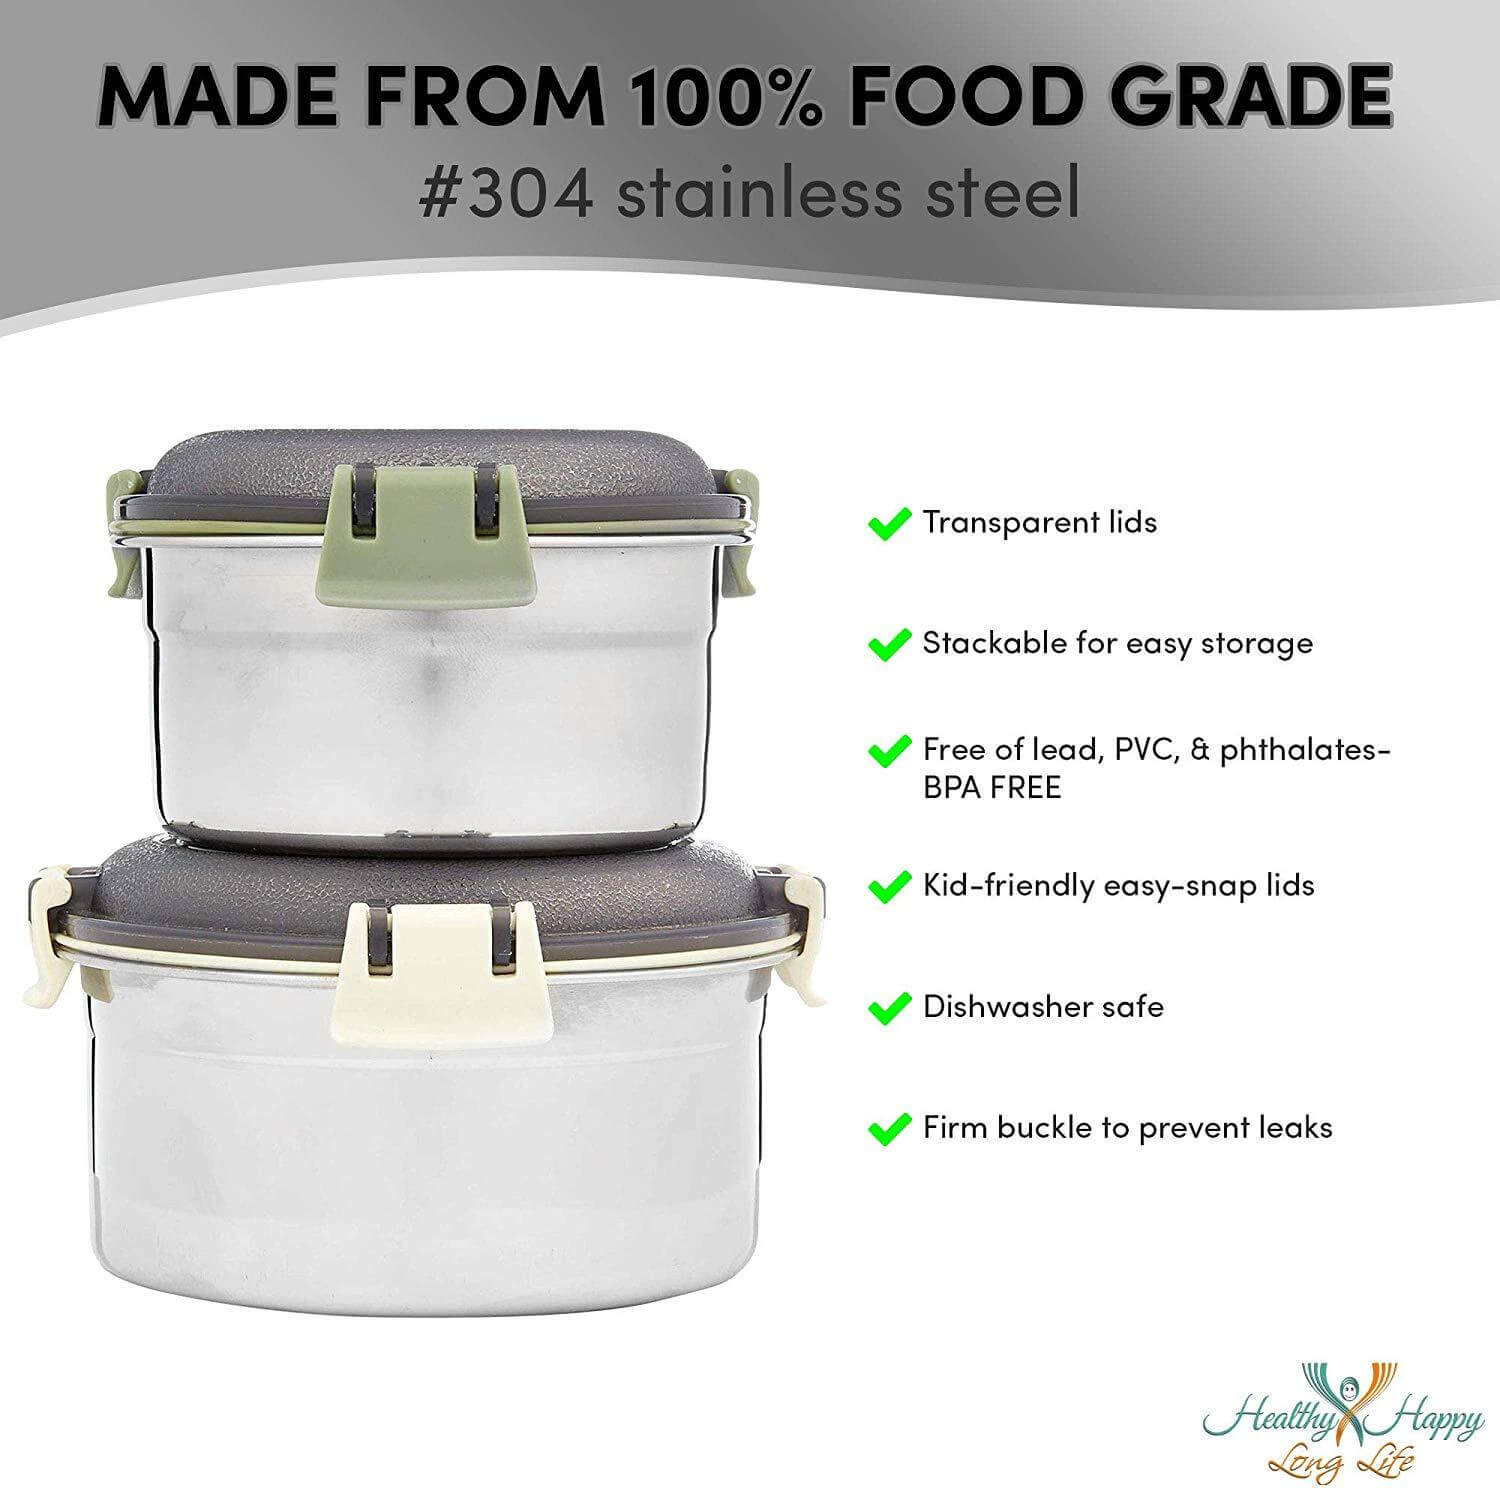 Healthy Happy Long Life Food Containers - 2-Pack Stainless Steel Storage Bowls with Clear Airtight Lids - Leak-Proof, Stackable Snapware Lunch or Snack Box for School, Camping, Travel - 12oz and 20oz